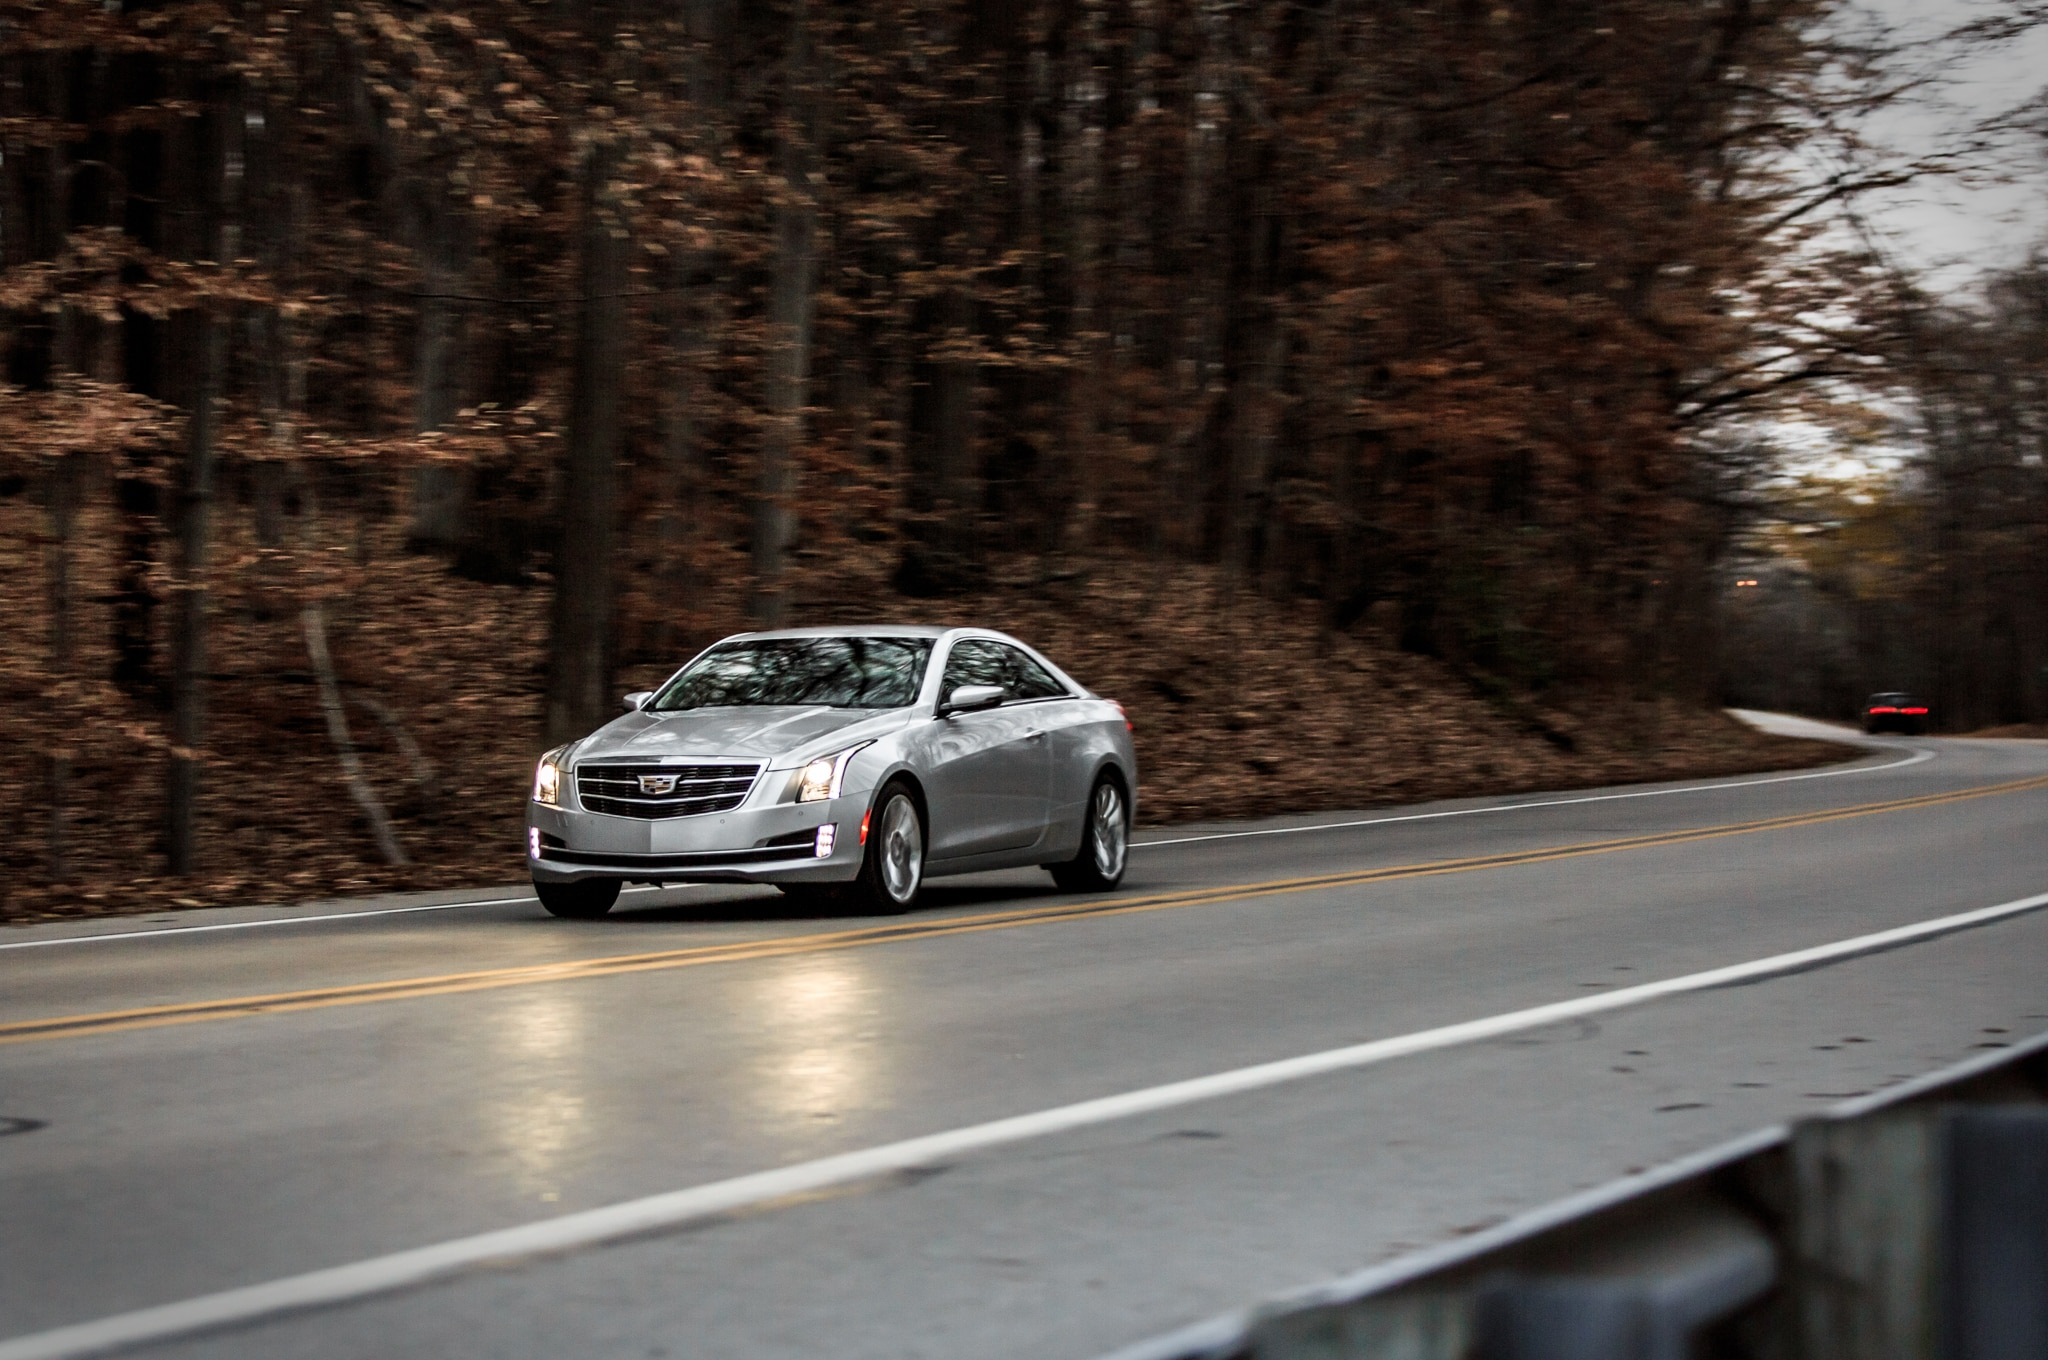 2015 Cadillac Ats Coupe 20t Manual Around The Block Gm Volt Engine Diagram Show More